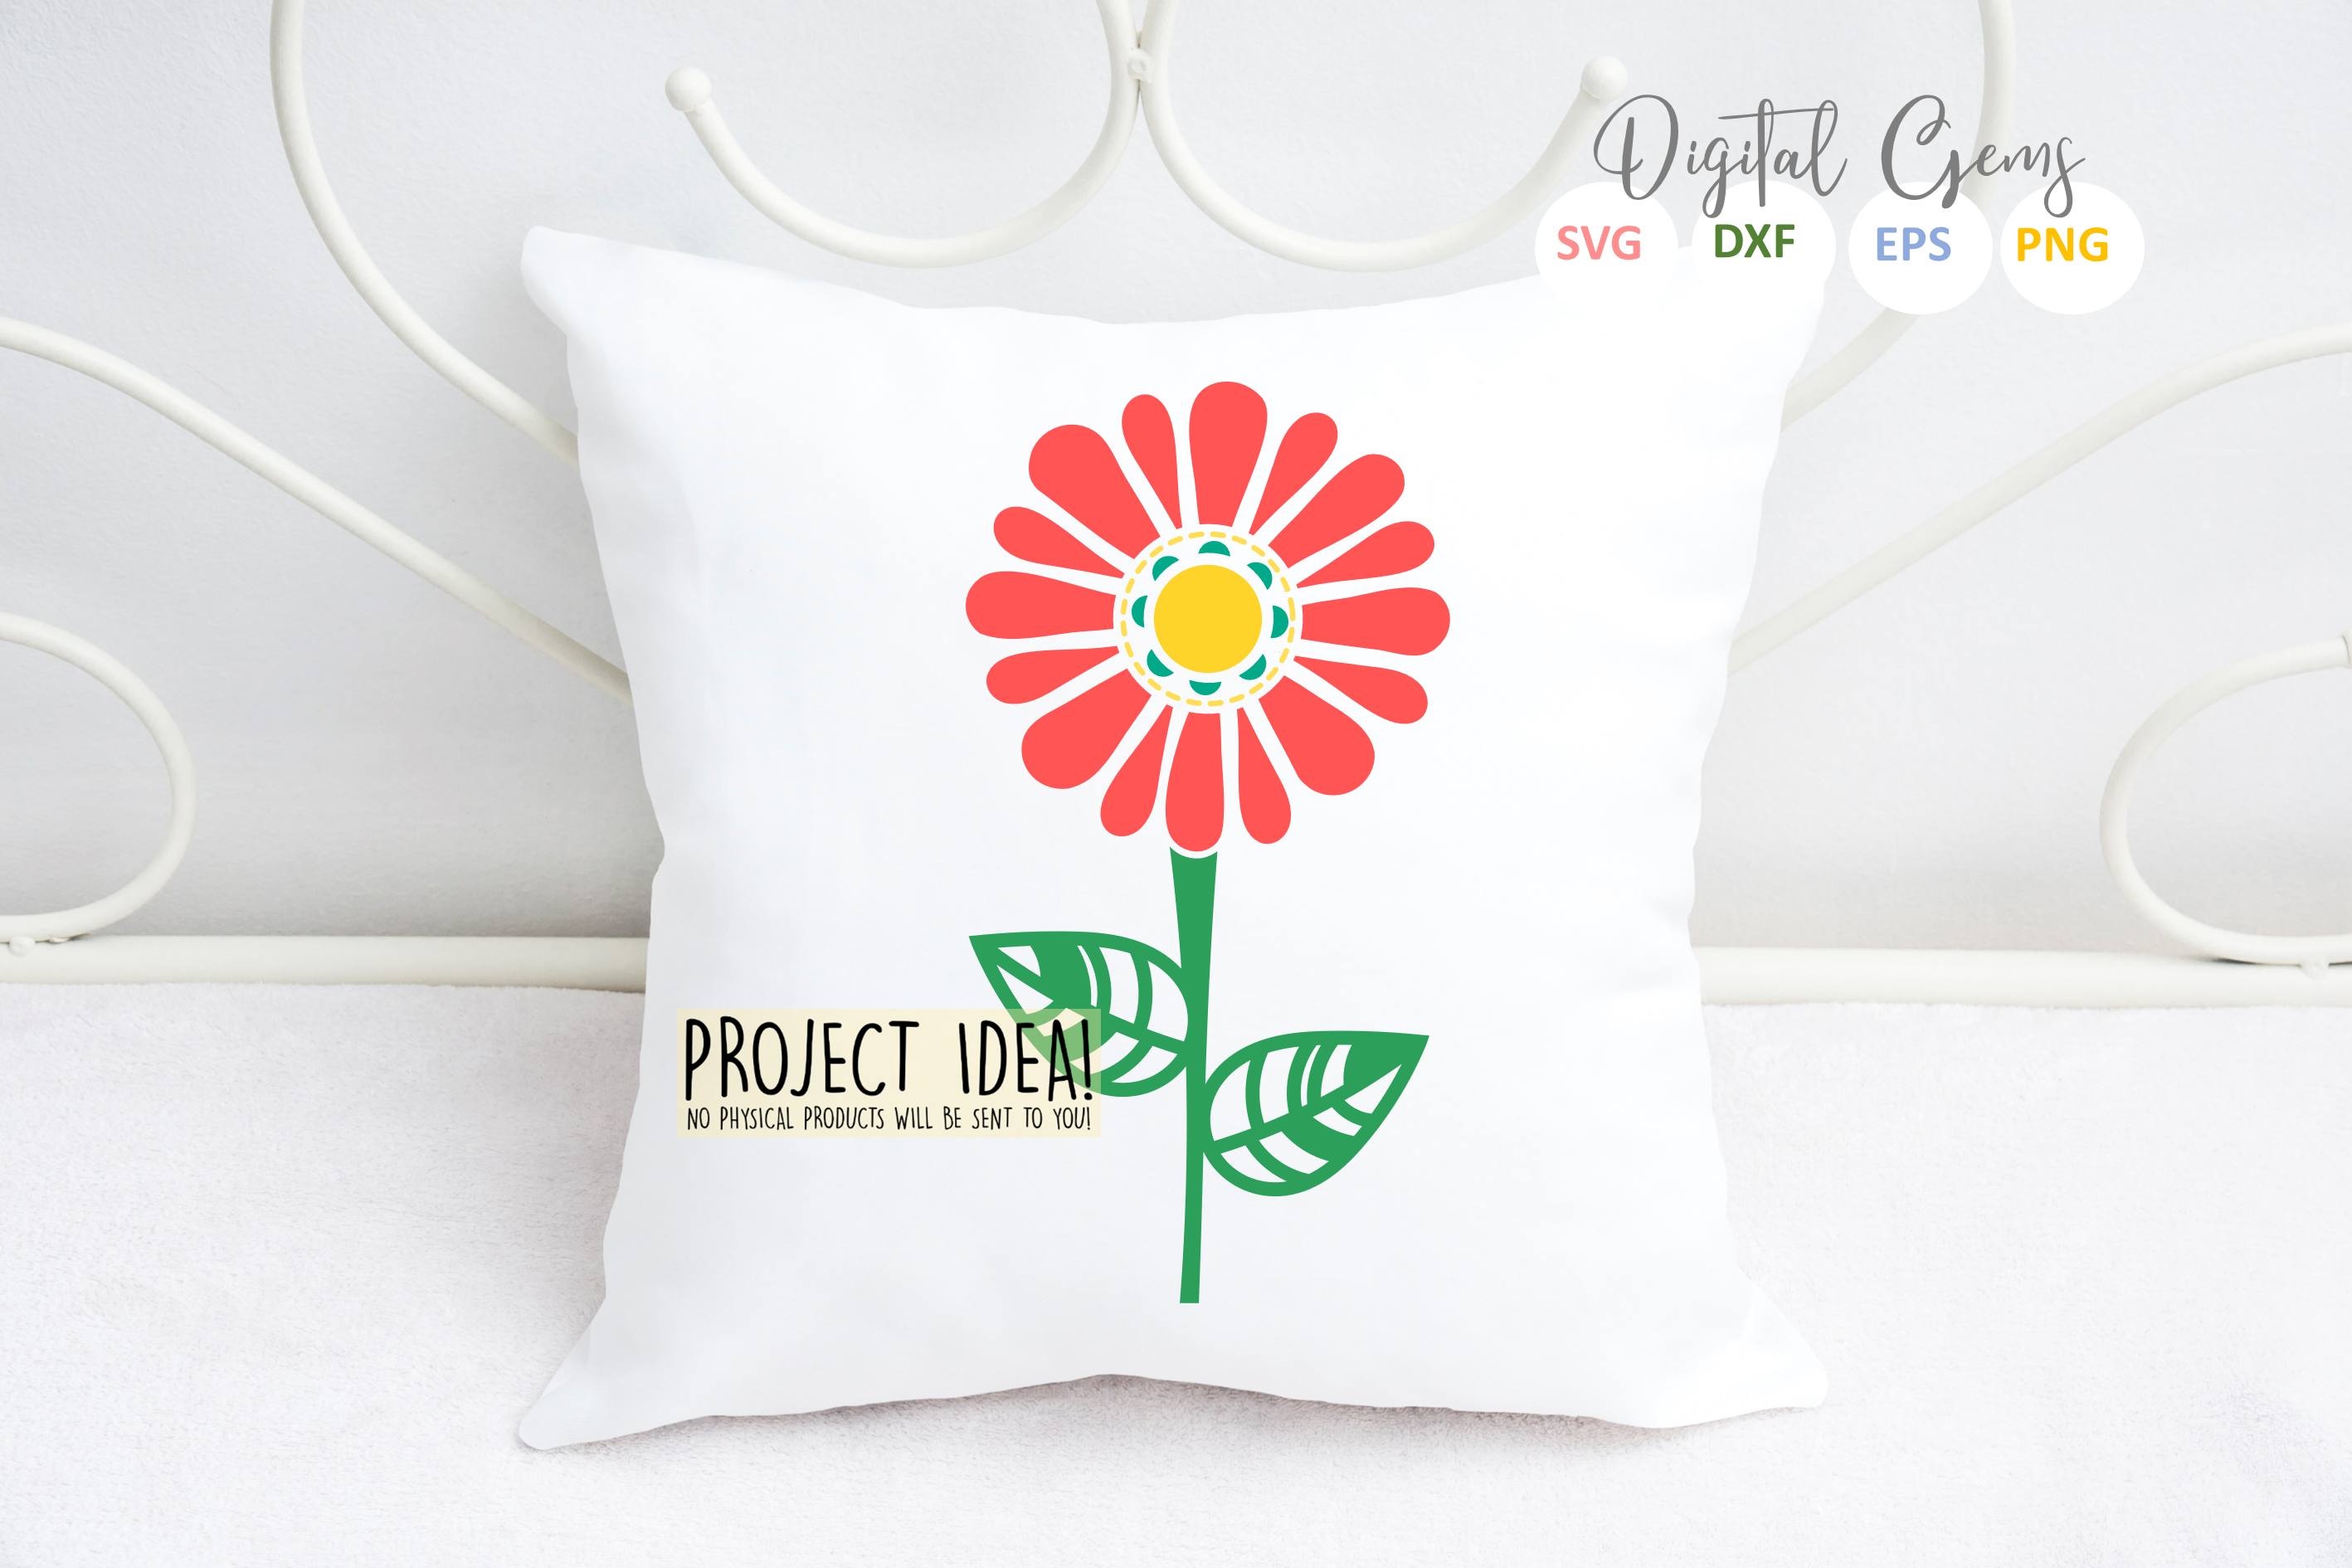 Flower SVG / DXF / EPS / PNG files example image 2